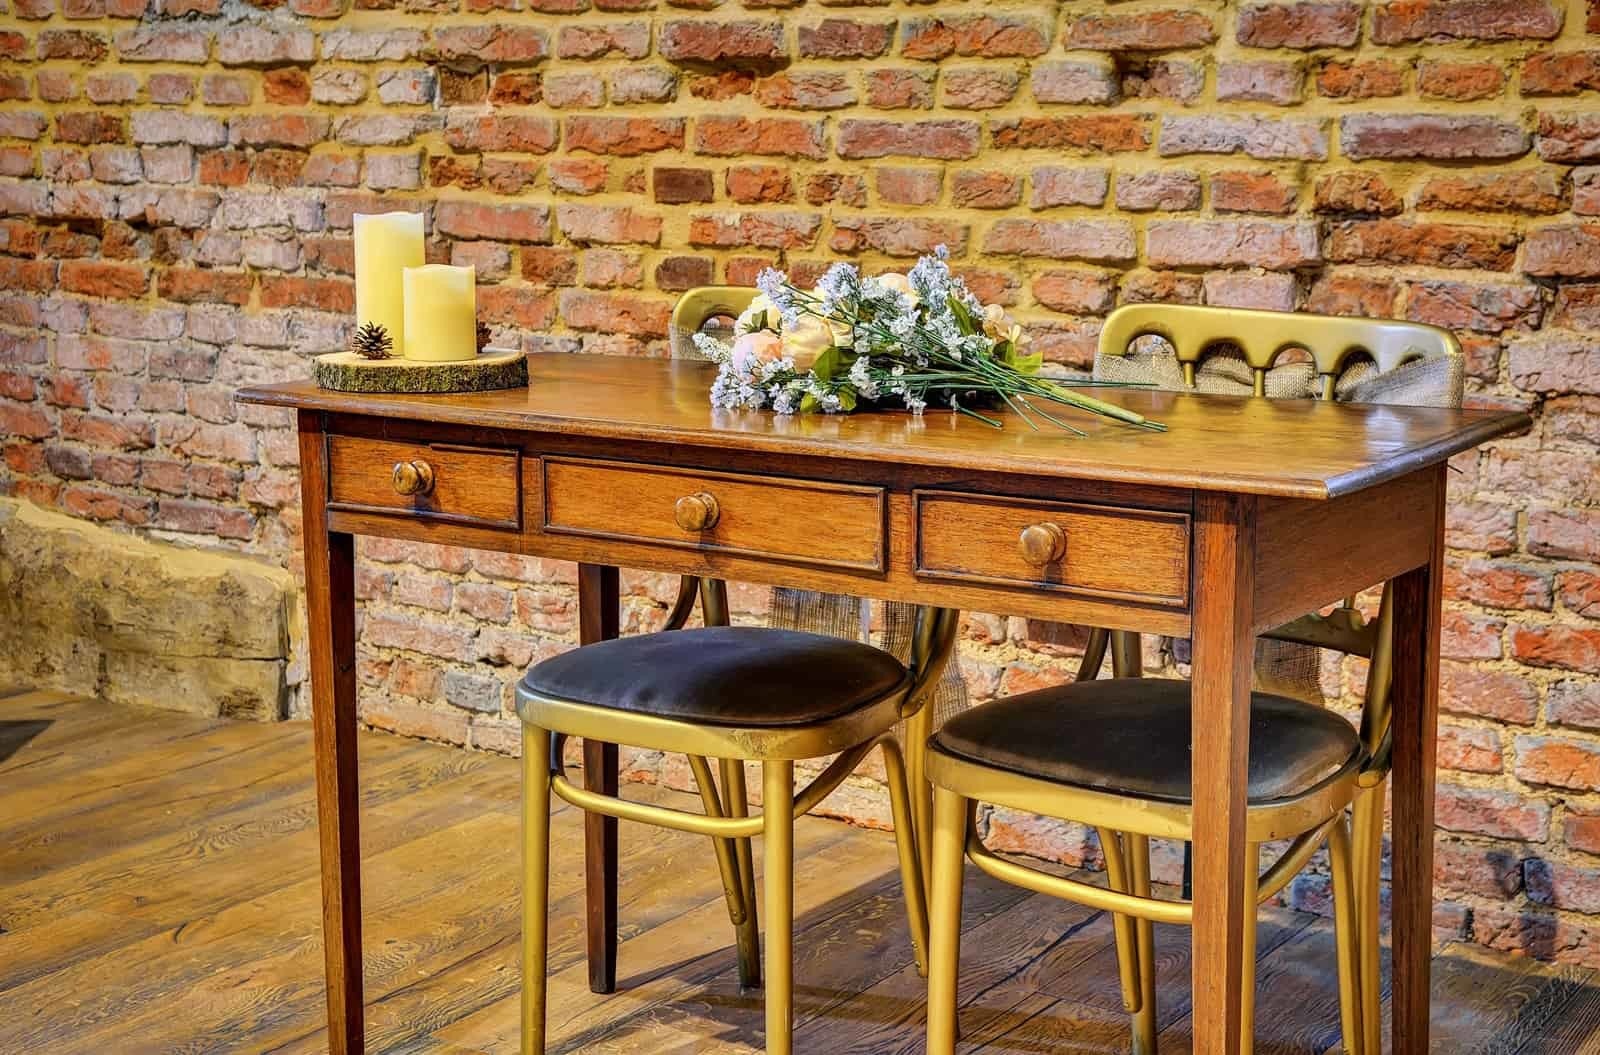 Copdock Hall Desk with flowers